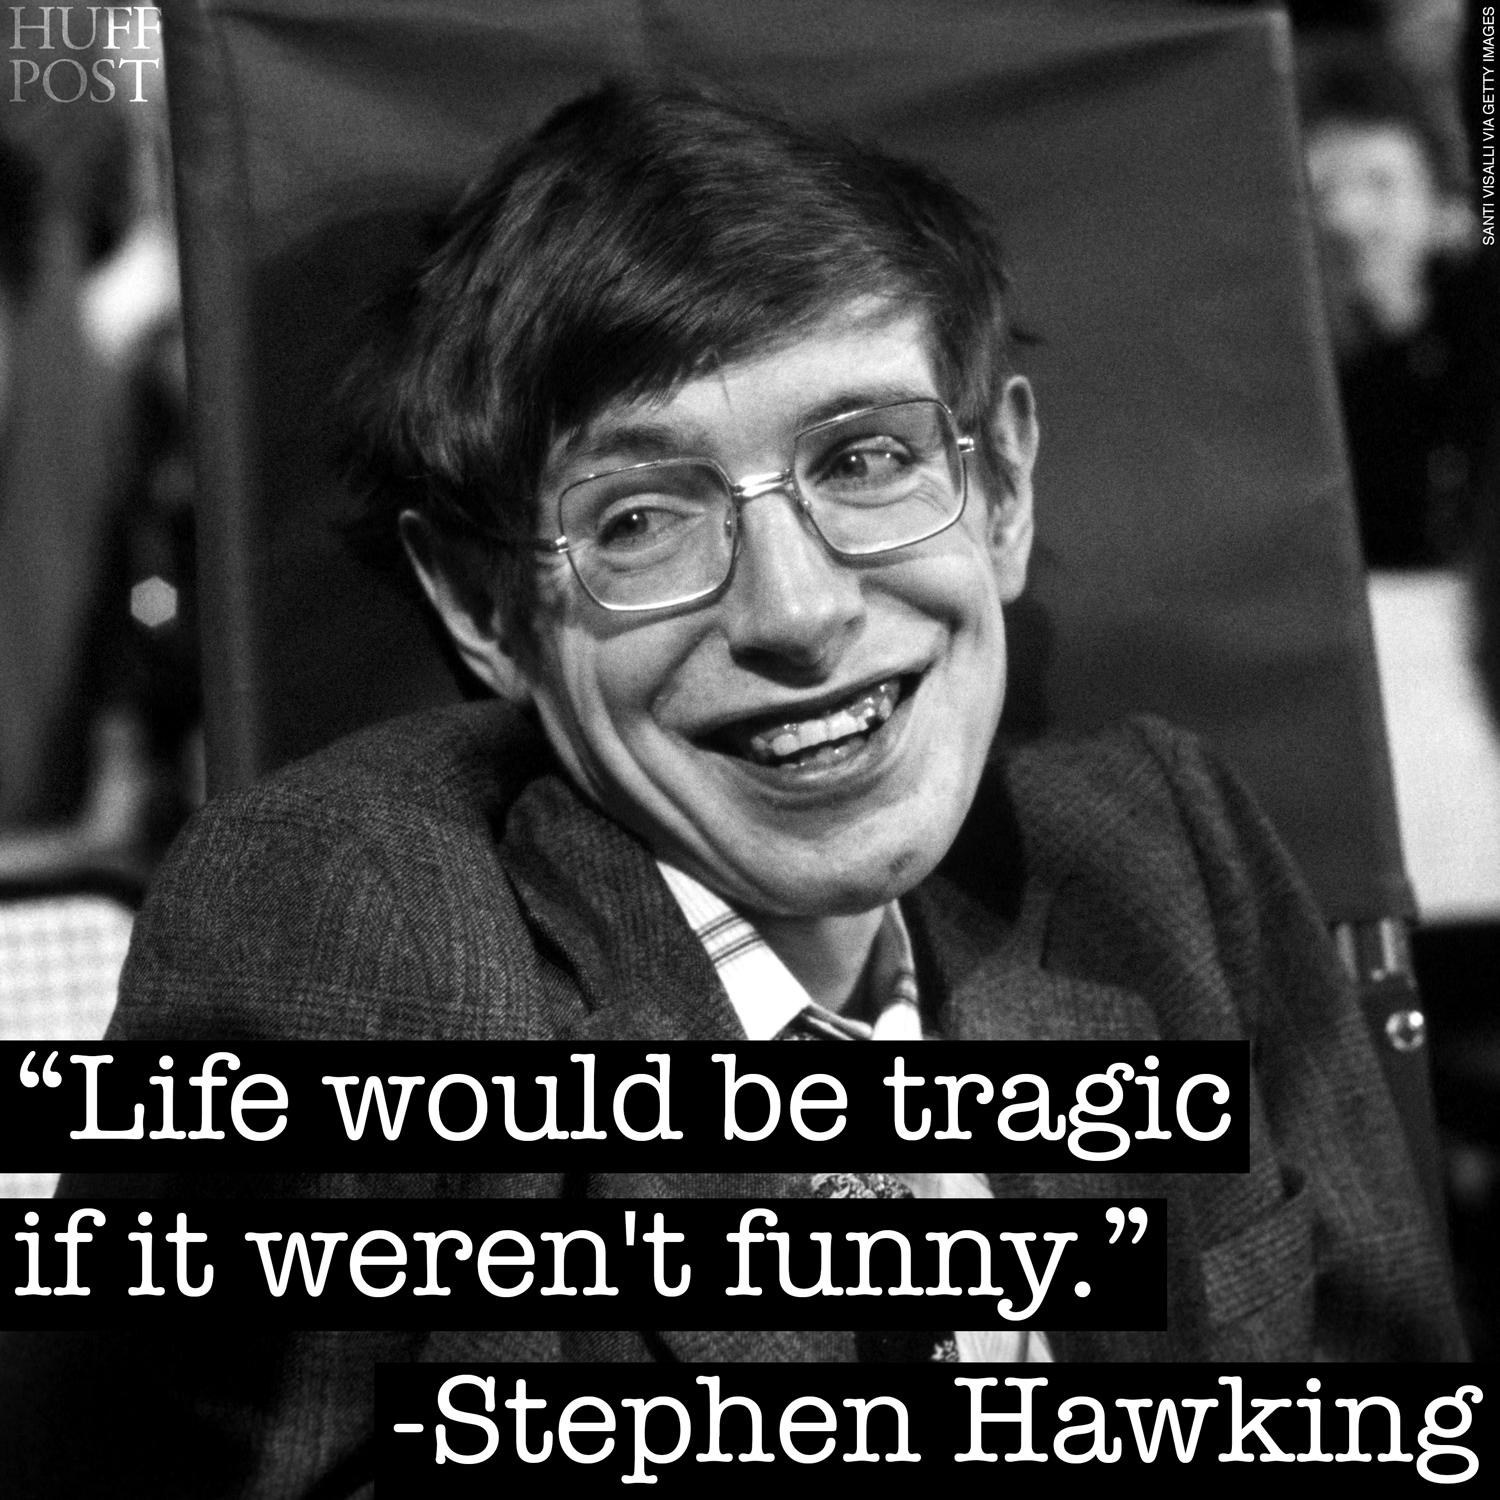 stephen hawking essay help me do my essay stephen j hawking by  huffington post on happy birthday stephen hawking huffington post on happy birthday stephen hawking t co